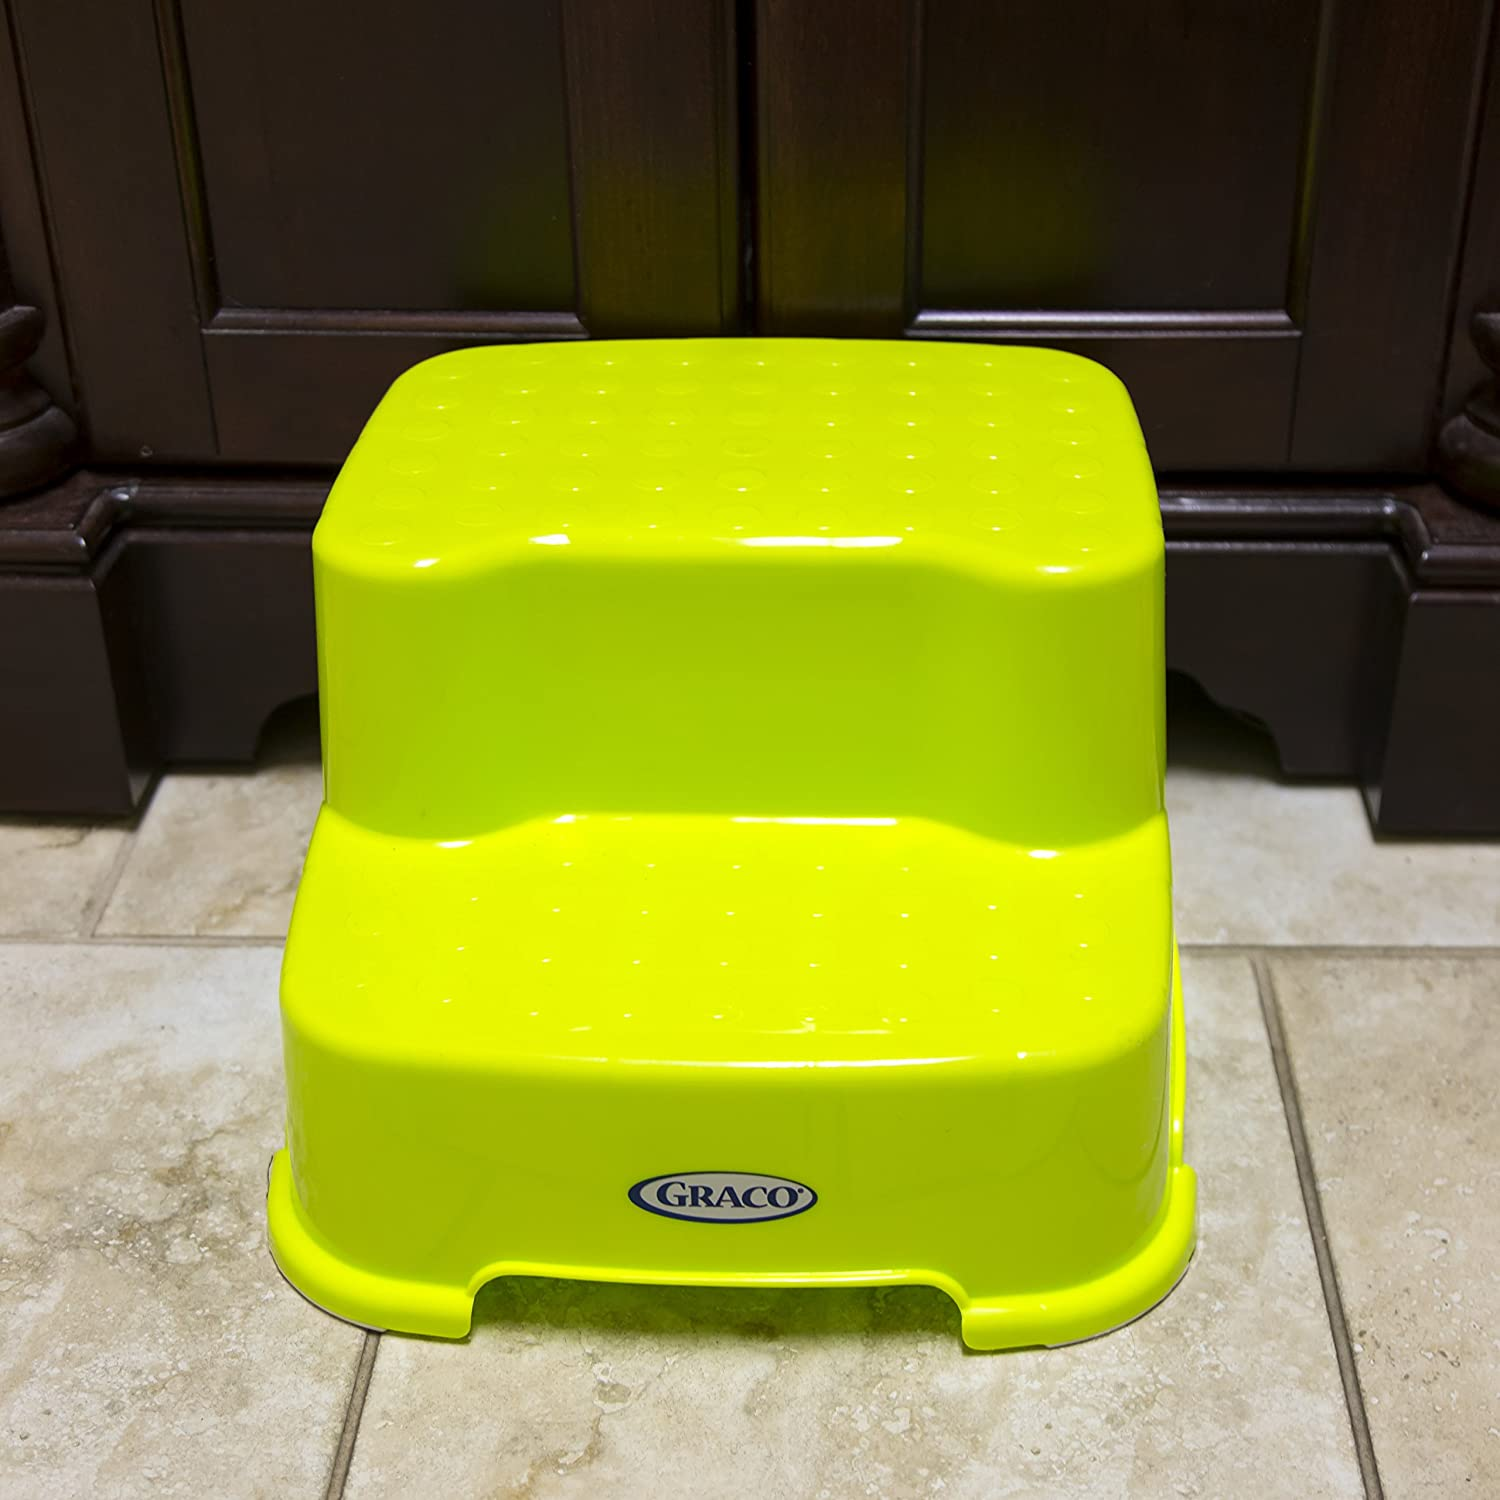 Graco Sure Foot Step Stool White/Green high-quality & Graco Sure Foot Step Stool White/Green high-quality ... islam-shia.org